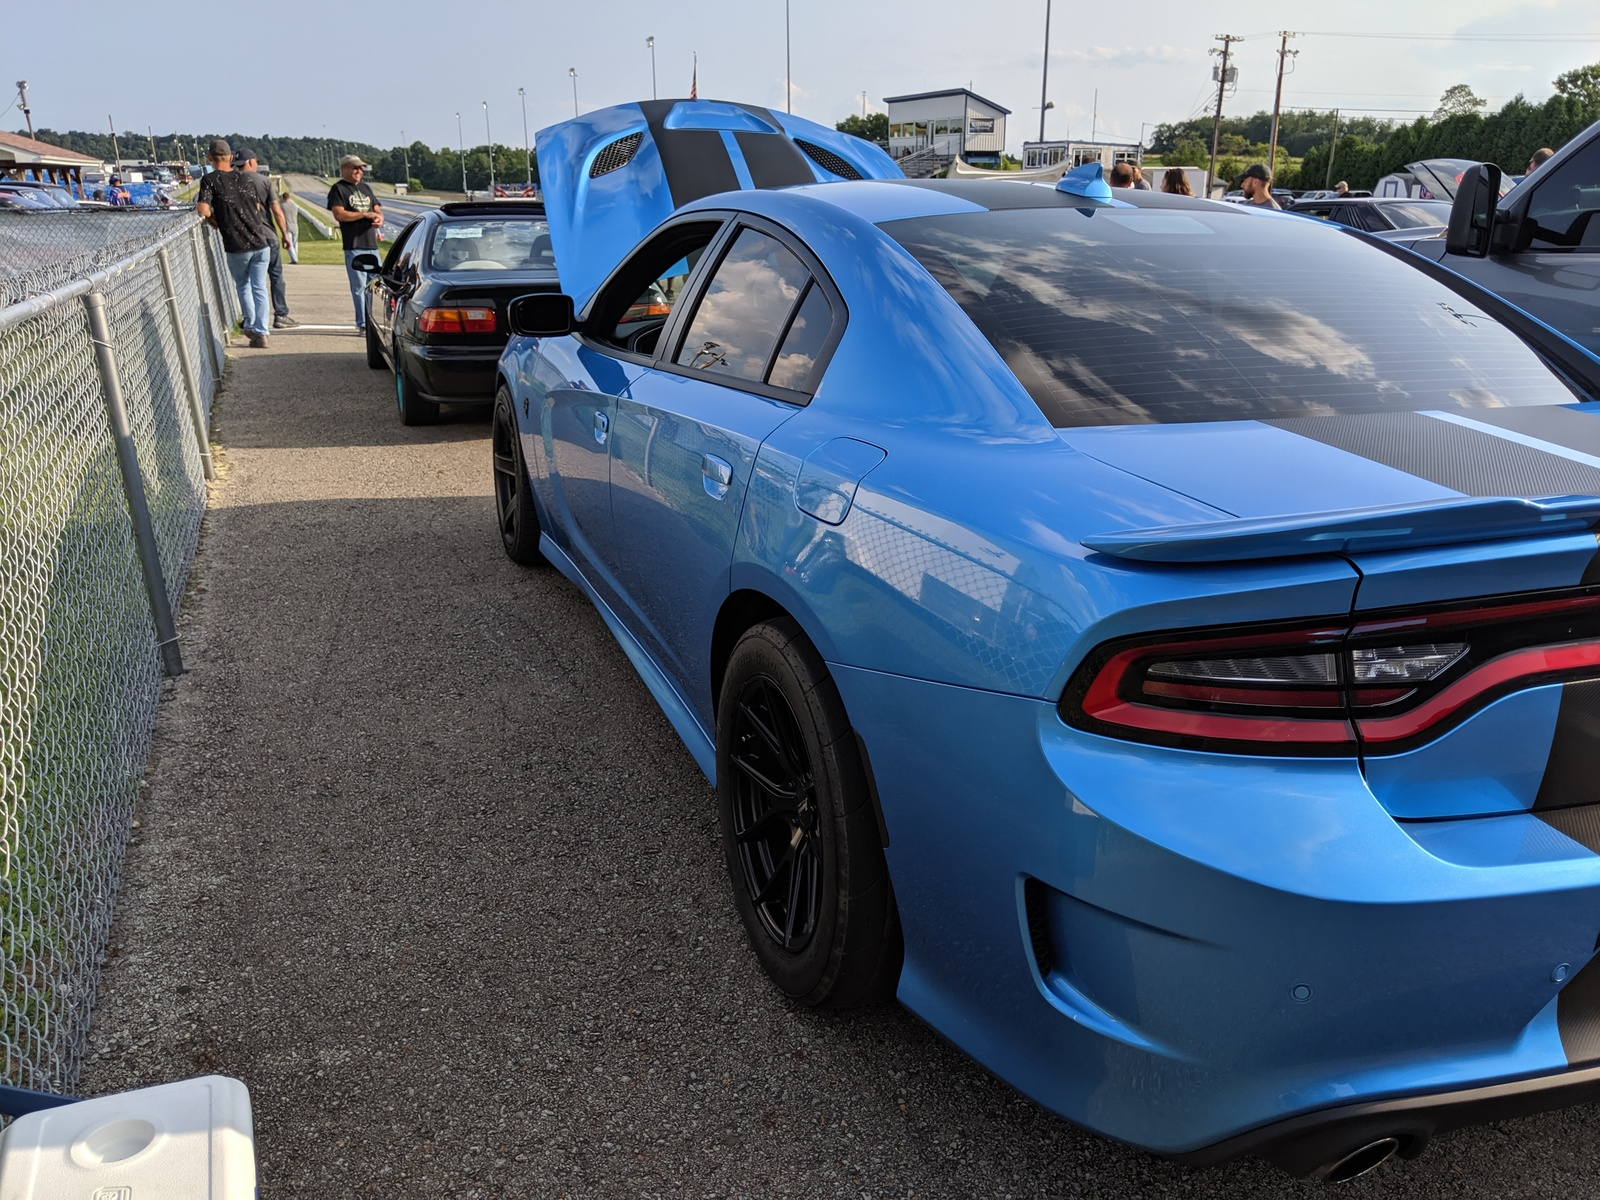 2019 B5 Blue Dodge Charger Hellcat Hellcat Picture 2019 Dodge Charger Hellcat Blue 1600x1200 Wallpaper Teahub Io